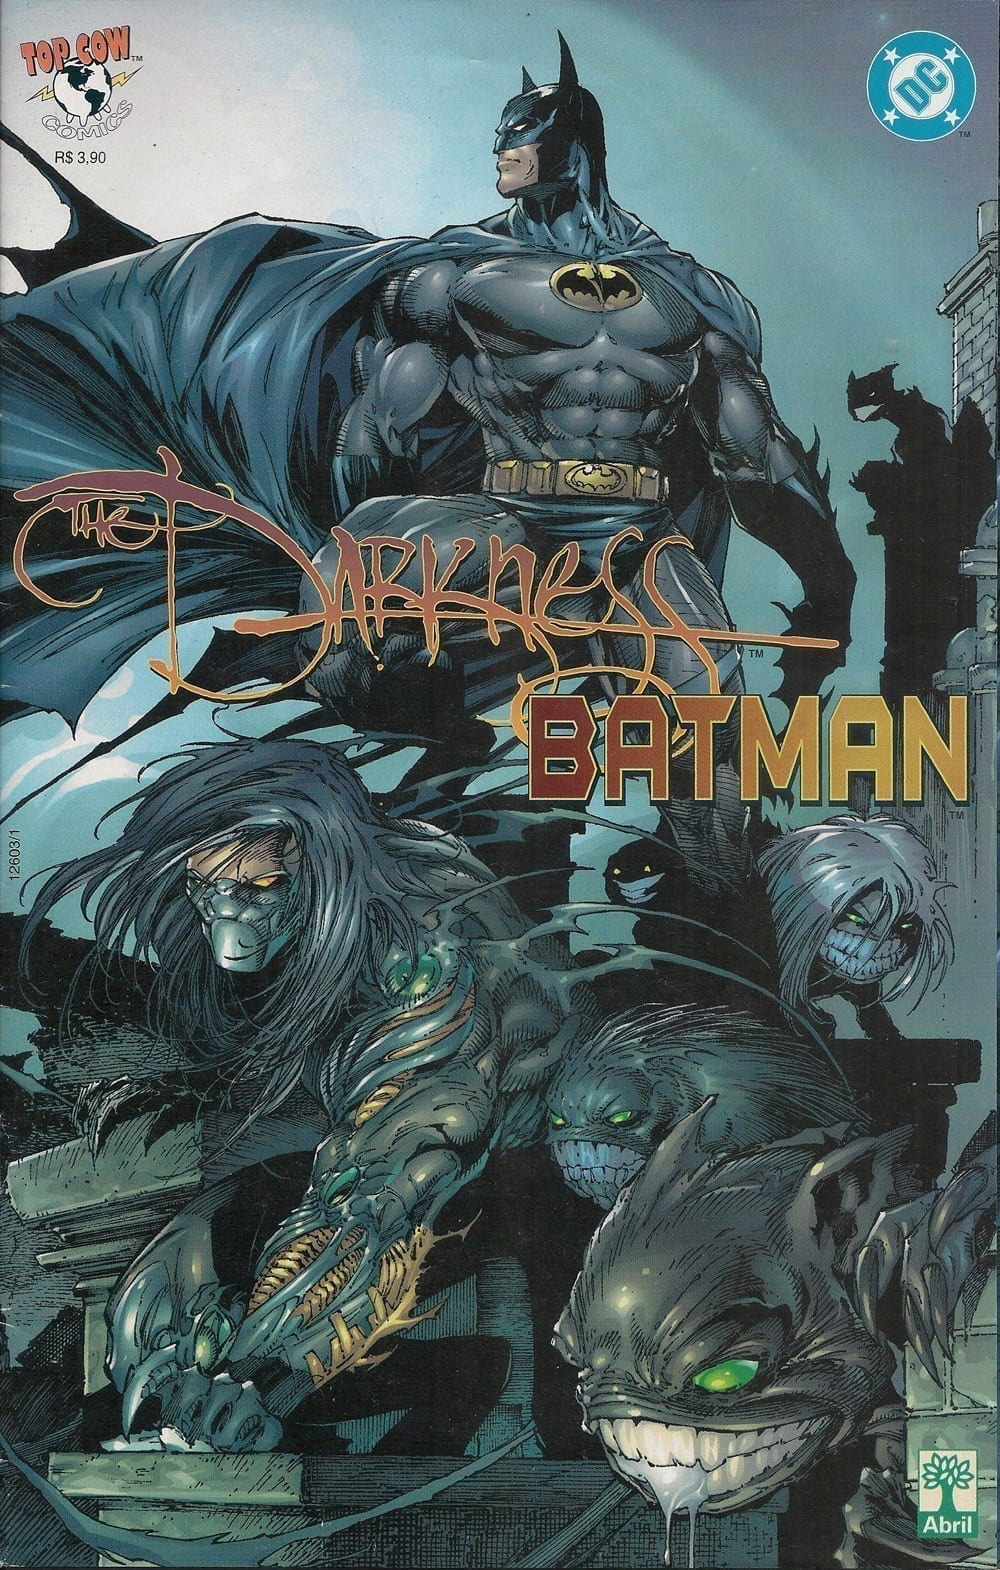 <span>The Darkness & Batman</span>